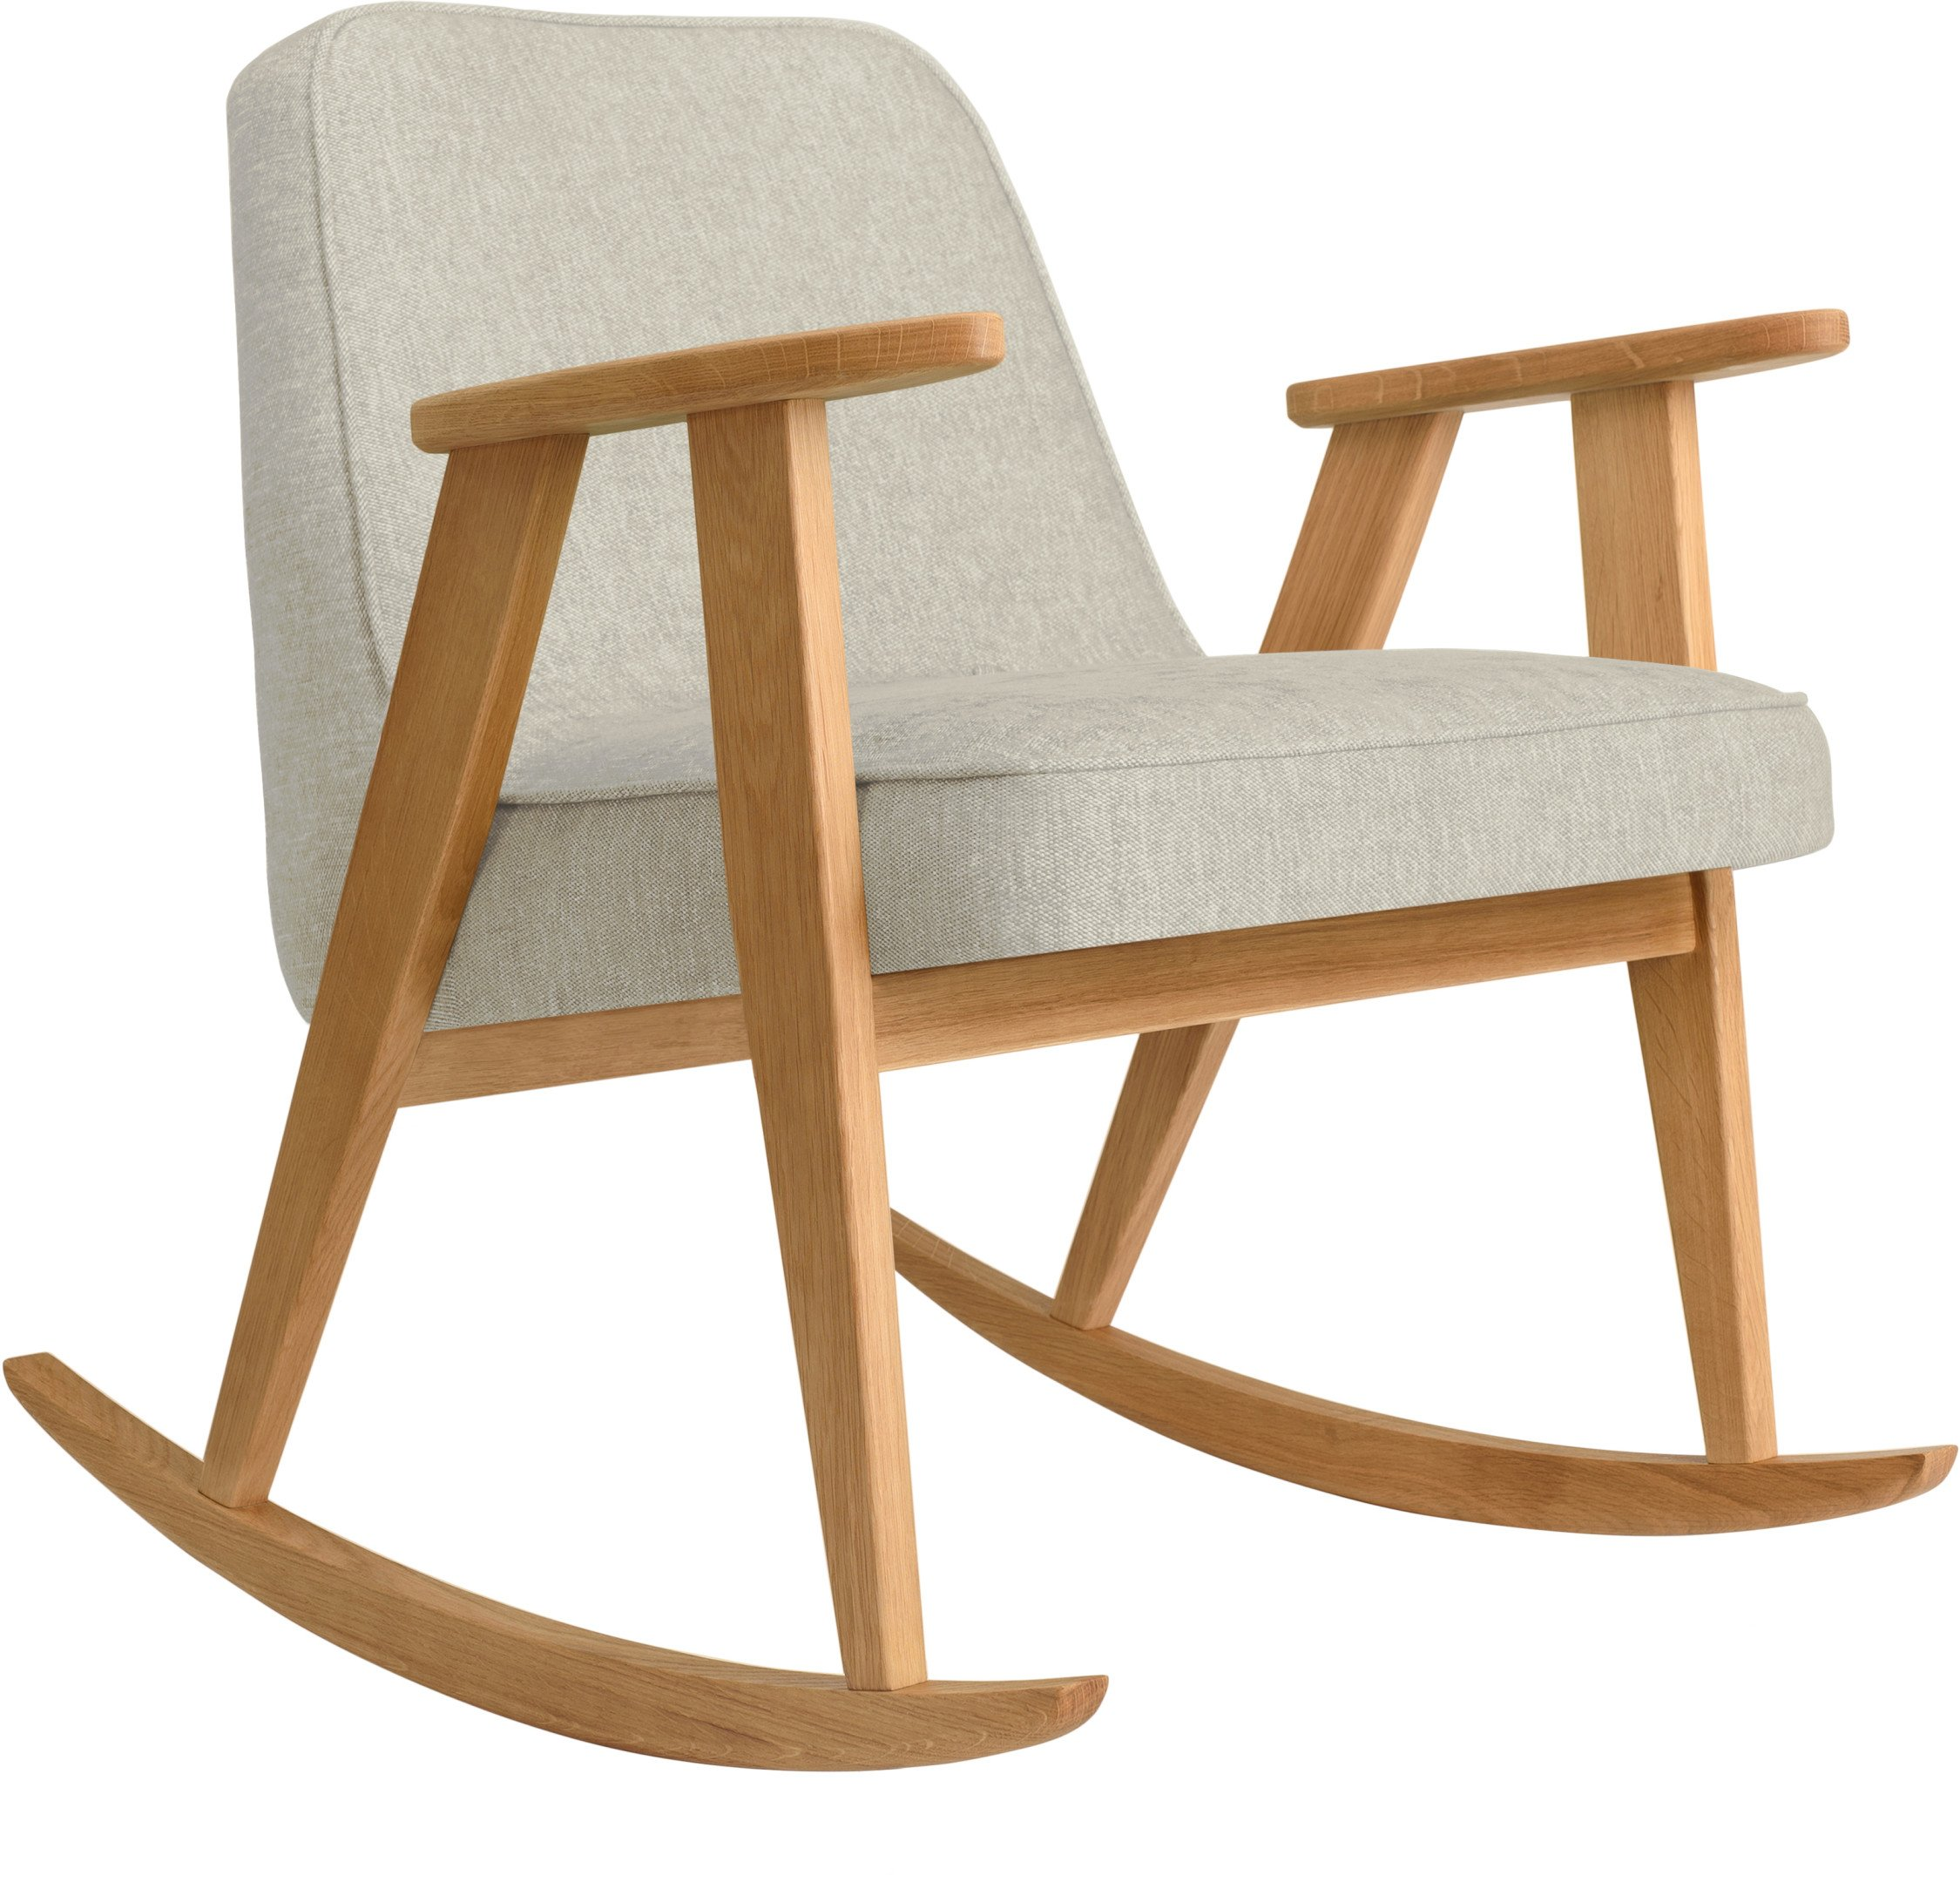 366 Rocking Chair Loft White (natural oak) by Józef Chierowski